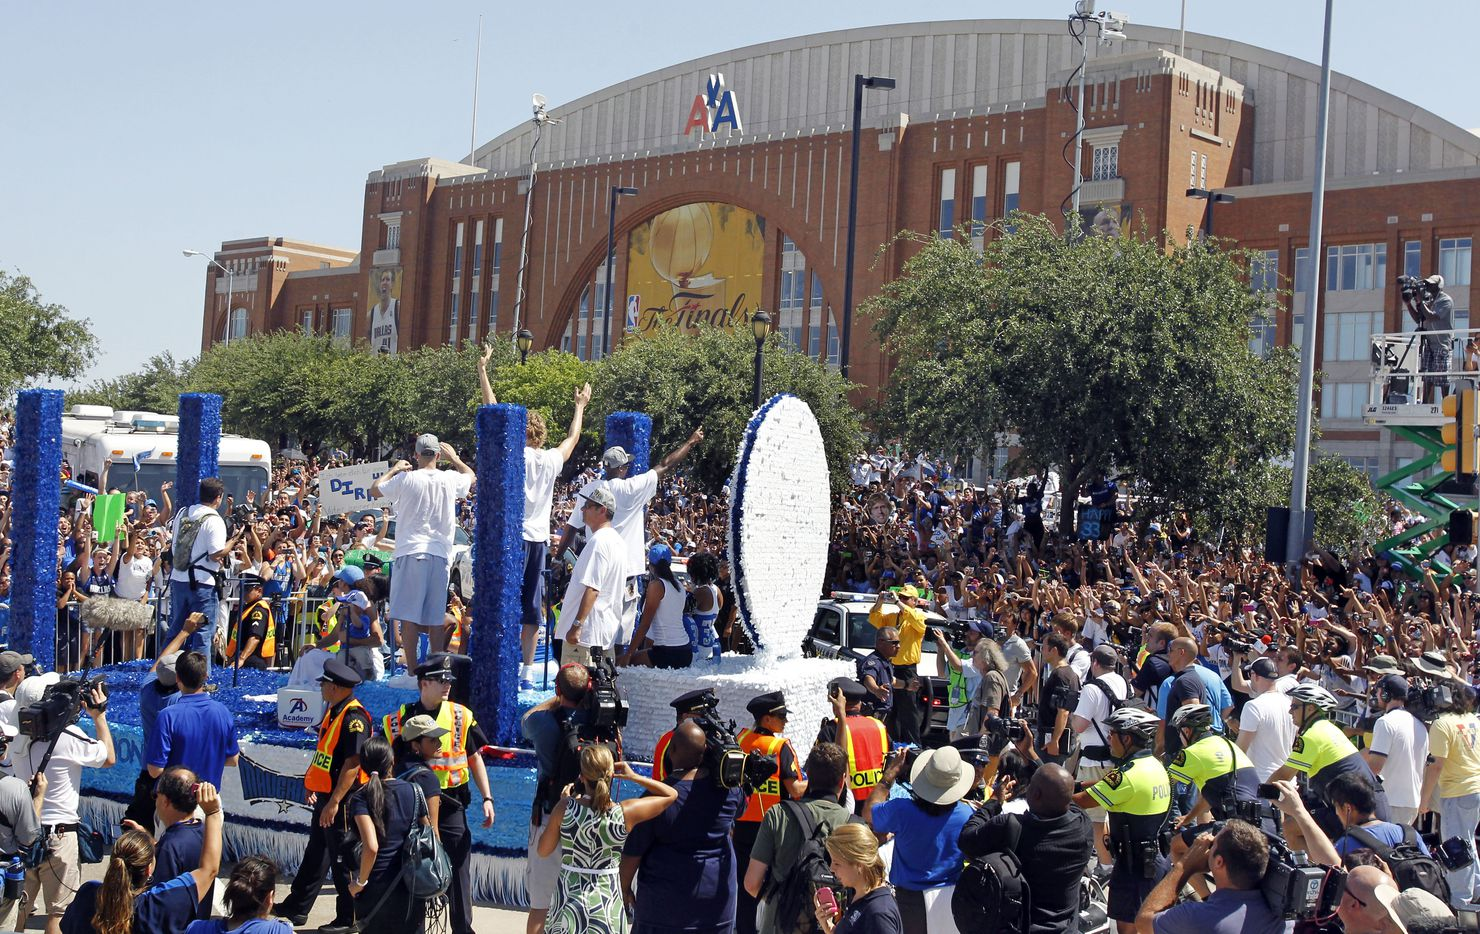 A float carrying Jason Kidd, Dirk Nowitzki and Jason terry passes in front of the American Airlines Center during the Dallas Mavericks victory parade and celebration in Dallas on Thursday, June 16, 2011.   (Louis DeLuca/The Dallas Morning News) / mavsmavsmavs /